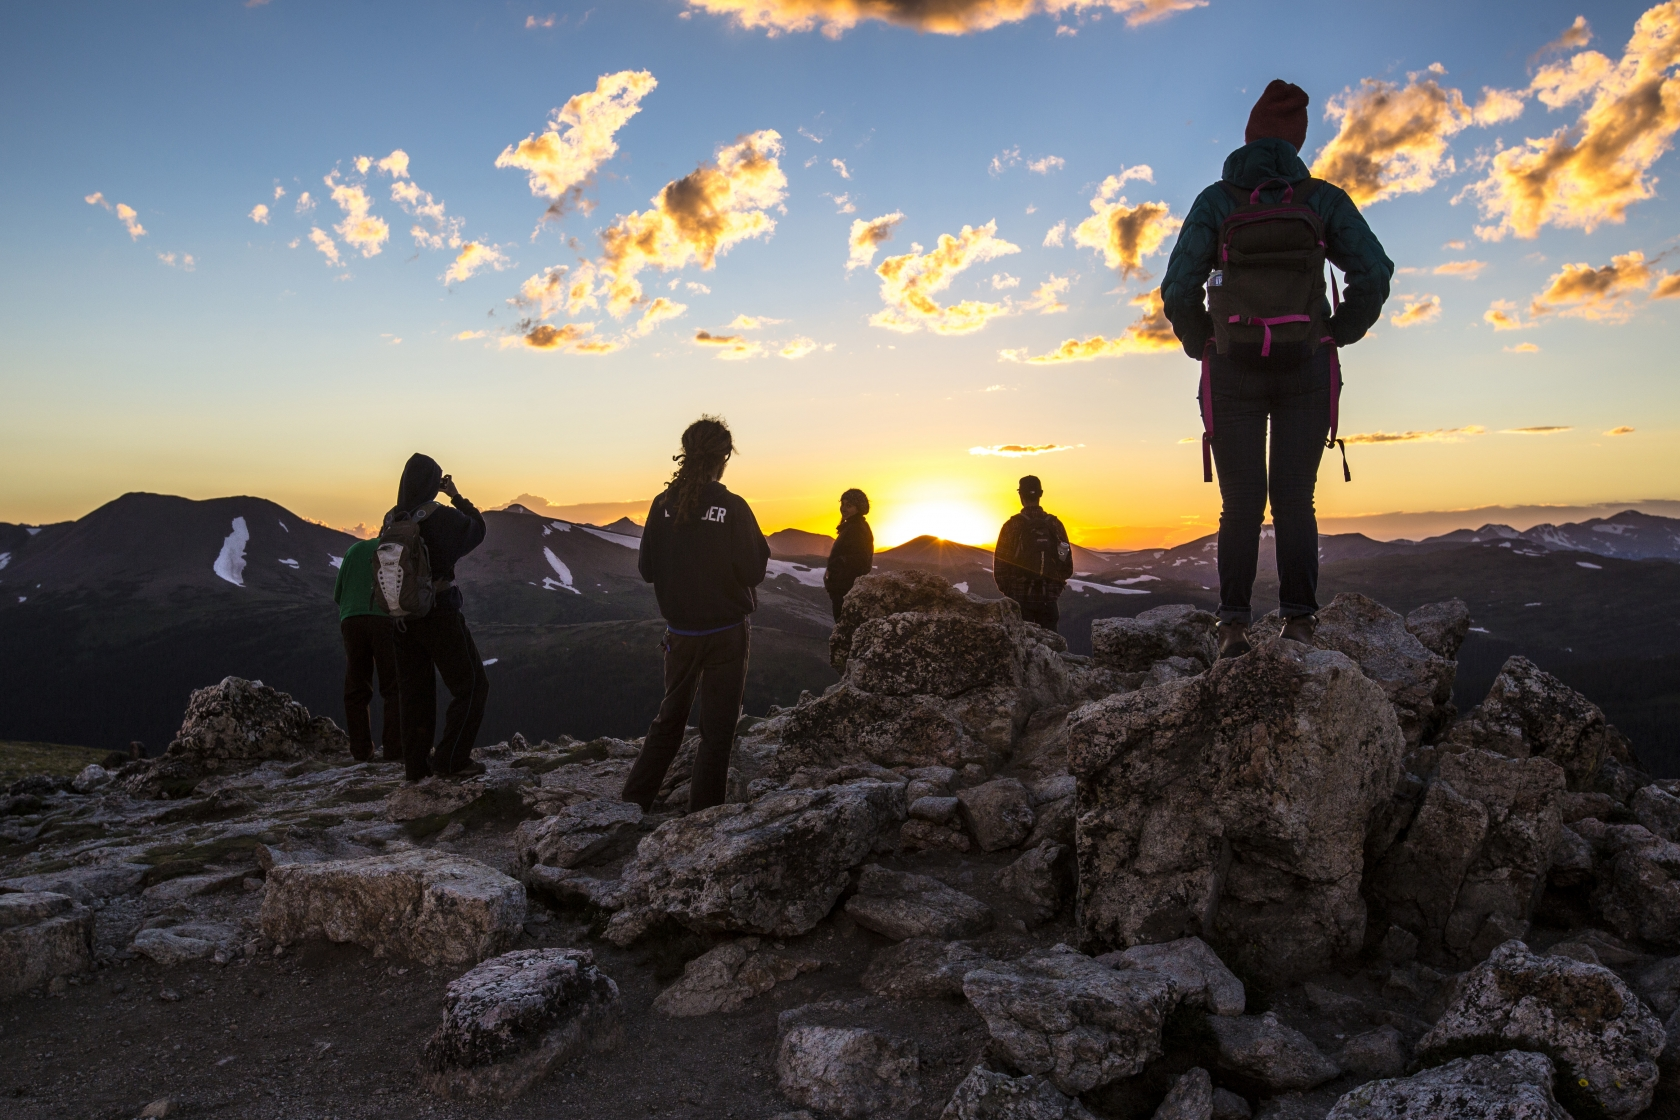 Hikers in Rocky Mountain National Park.